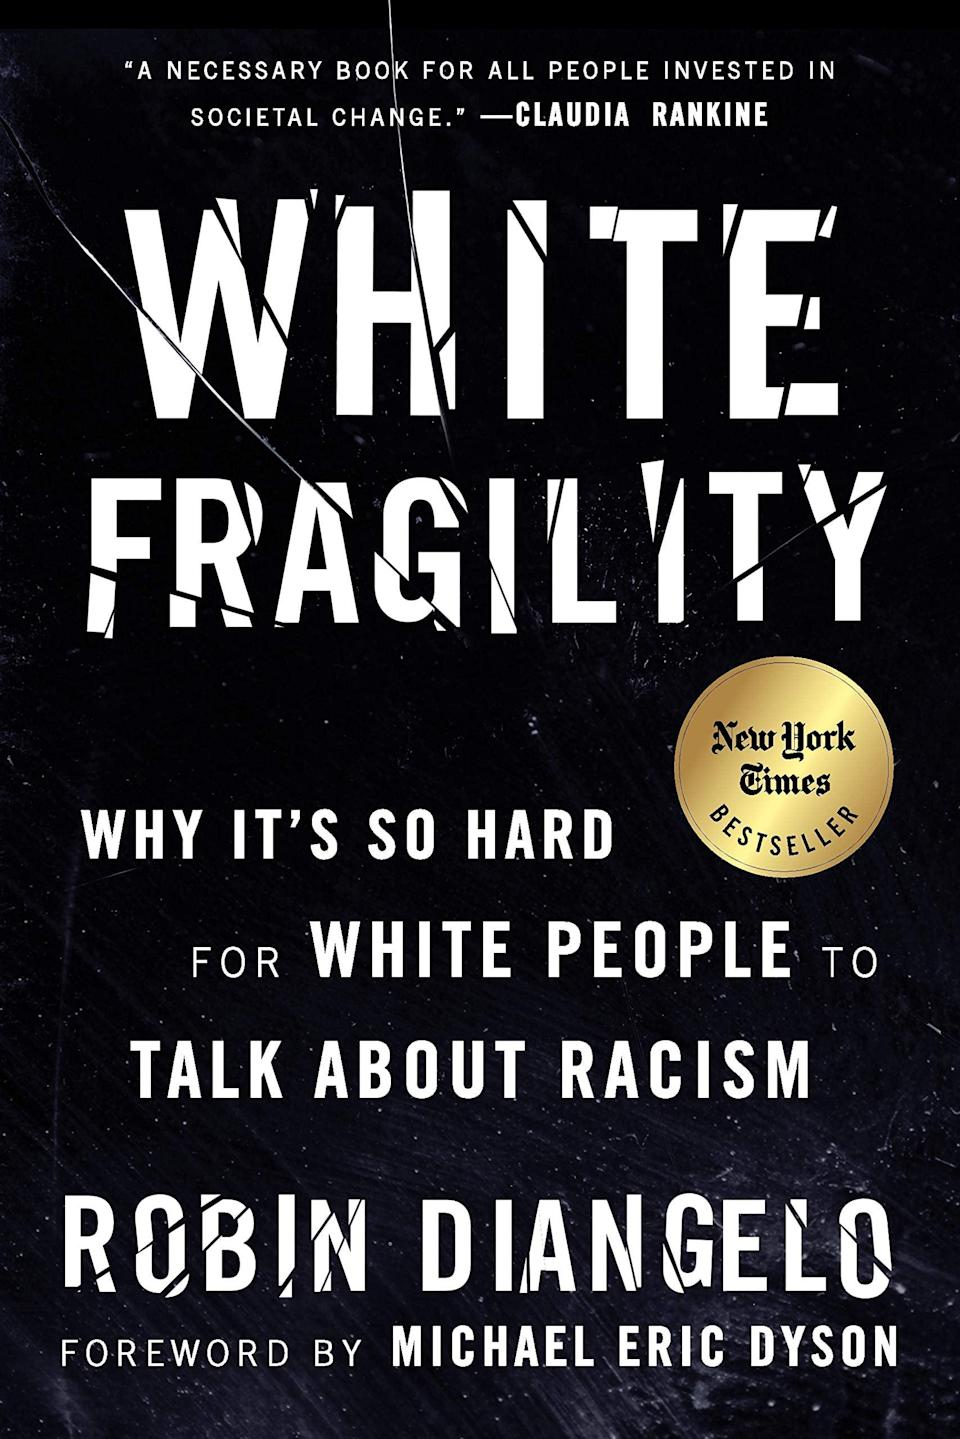 """<p>Every white person should be assigned to read <strong><a href=""""https://www.popsugar.com/buy?url=https%3A%2F%2Fwww.amazon.com%2FWhite-Fragility-People-About-Racism%2Fdp%2F0807047414%2Fref%3Dsr_1_1%3Fdchild%3D1%26keywords%3Dwhite%2Bfragility%26qid%3D1590879933%26s%3Dbooks%26sr%3D1-1&p_name=White%20Fragility&retailer=amazon.com&evar1=news%3Aus&evar9=47518818&evar98=https%3A%2F%2Fwww.popsugar.com%2Fnews%2Fphoto-gallery%2F47518818%2Fimage%2F47518819%2FWhite-Fragility-by-Robin-DiAngelo&prop13=mobile&pdata=1"""" class=""""link rapid-noclick-resp"""" rel=""""nofollow noopener"""" target=""""_blank"""" data-ylk=""""slk:White Fragility"""">White Fragility</a></strong>, Robin DiAngelo's unflinching book on the mundane and insidious ways racism is perpetuated - and why so many of us have such a challenging time even discussing it. In chapters like """"White Women's Tears,"""" she takes to task some of the most defensive and destructive behaviors white people use to deflect, distract, deny, and center themselves in conversations about race, and gives real, tangible advice on how to stop it.</p>"""